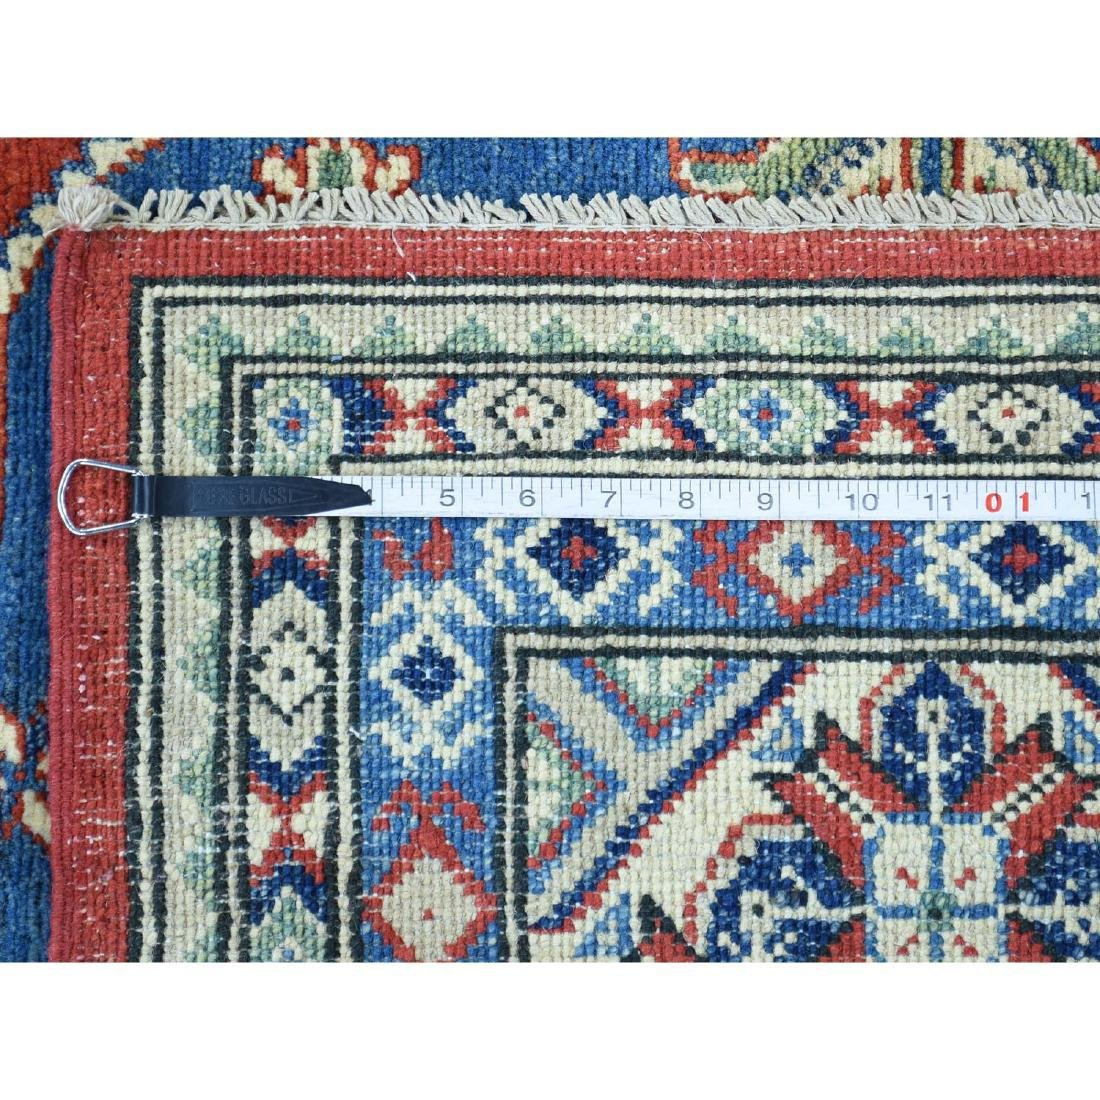 Hand-Knotted Kazak Square Tribal Design Rug 6.7x6.7 - 5